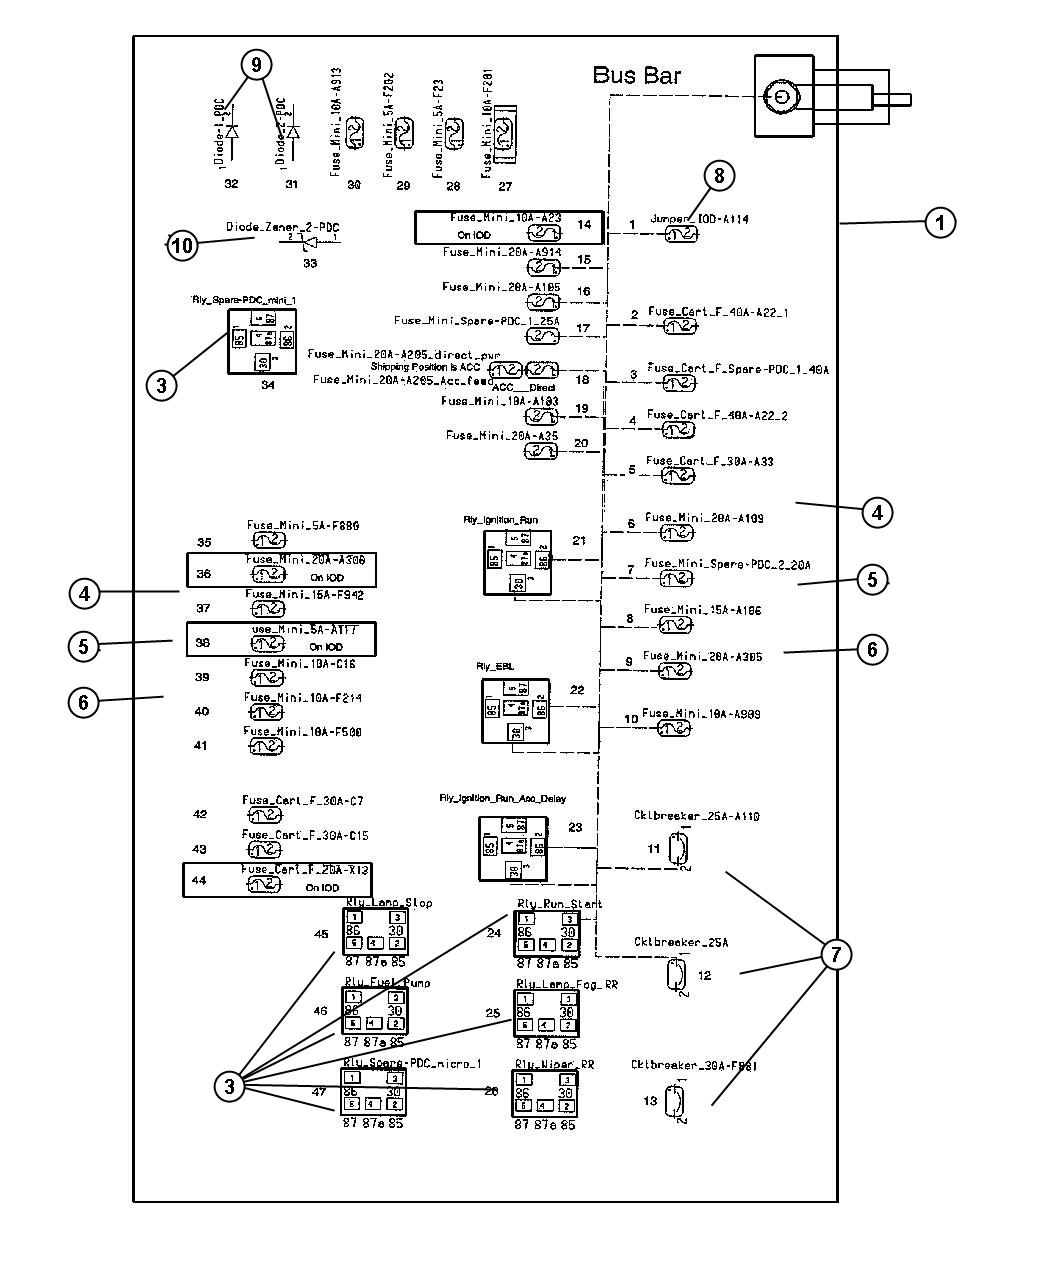 07 Charger Fuse Diagram | Wiring Diagram on 2005 dodge magnum fuse box layout, 2008 dodge magnum fuse box layout, 2007 dodge ram 1500 fuse box layout, 2007 dodge ram 3500 fuse box layout, 2007 ford f-150 fuse box layout, 2007 dodge caliber fuse box layout, 2006 dodge magnum fuse box layout, 2007 lincoln mkz fuse box layout, 2007 jeep grand cherokee fuse box layout,